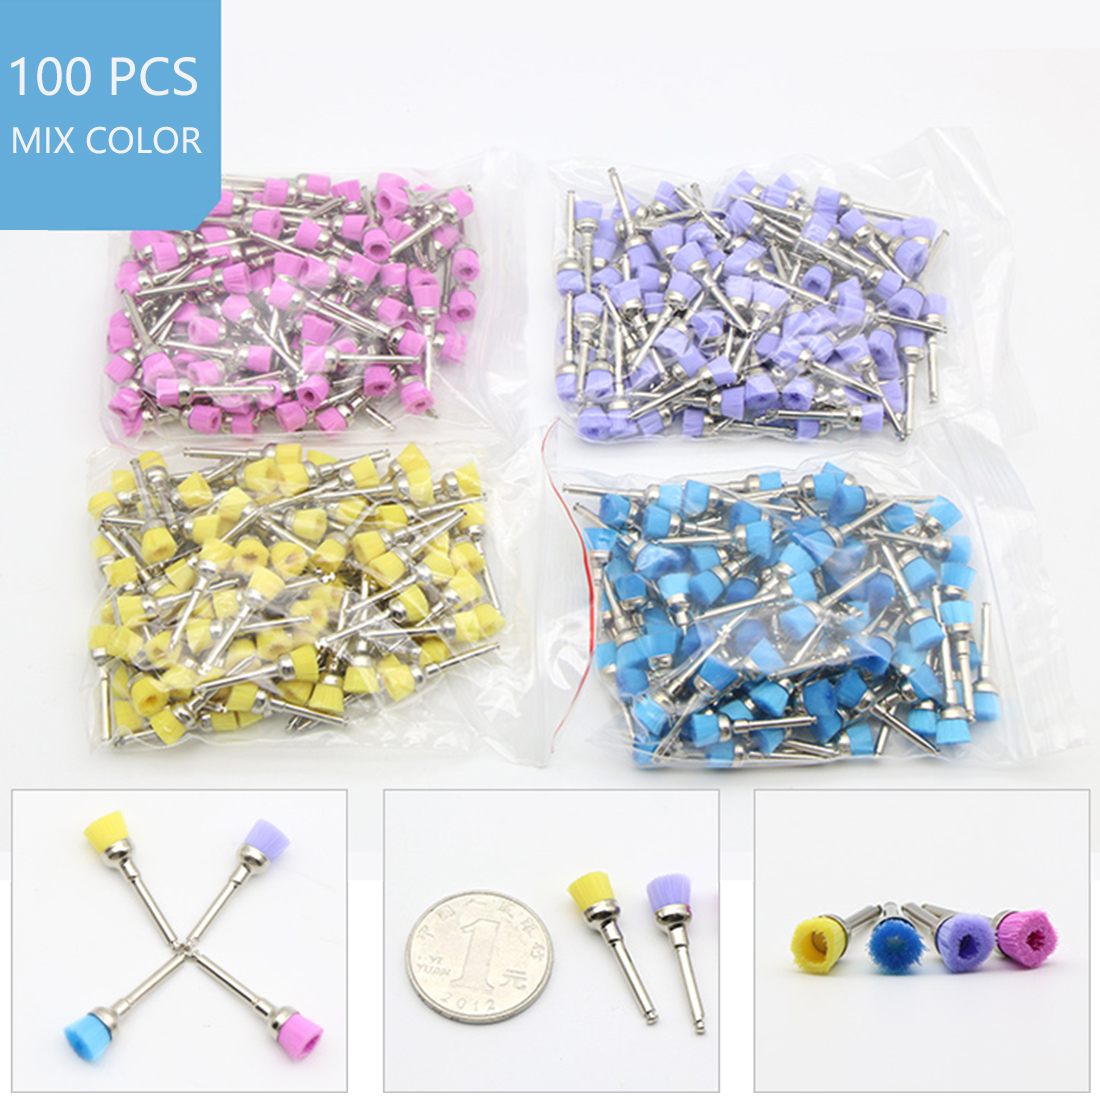 100Pcs/lot Dental Lab Materials Colorful Nylon Latch Small Flat Polishing Polisher Prophy Brushes Dentist Product Wholesale Tool